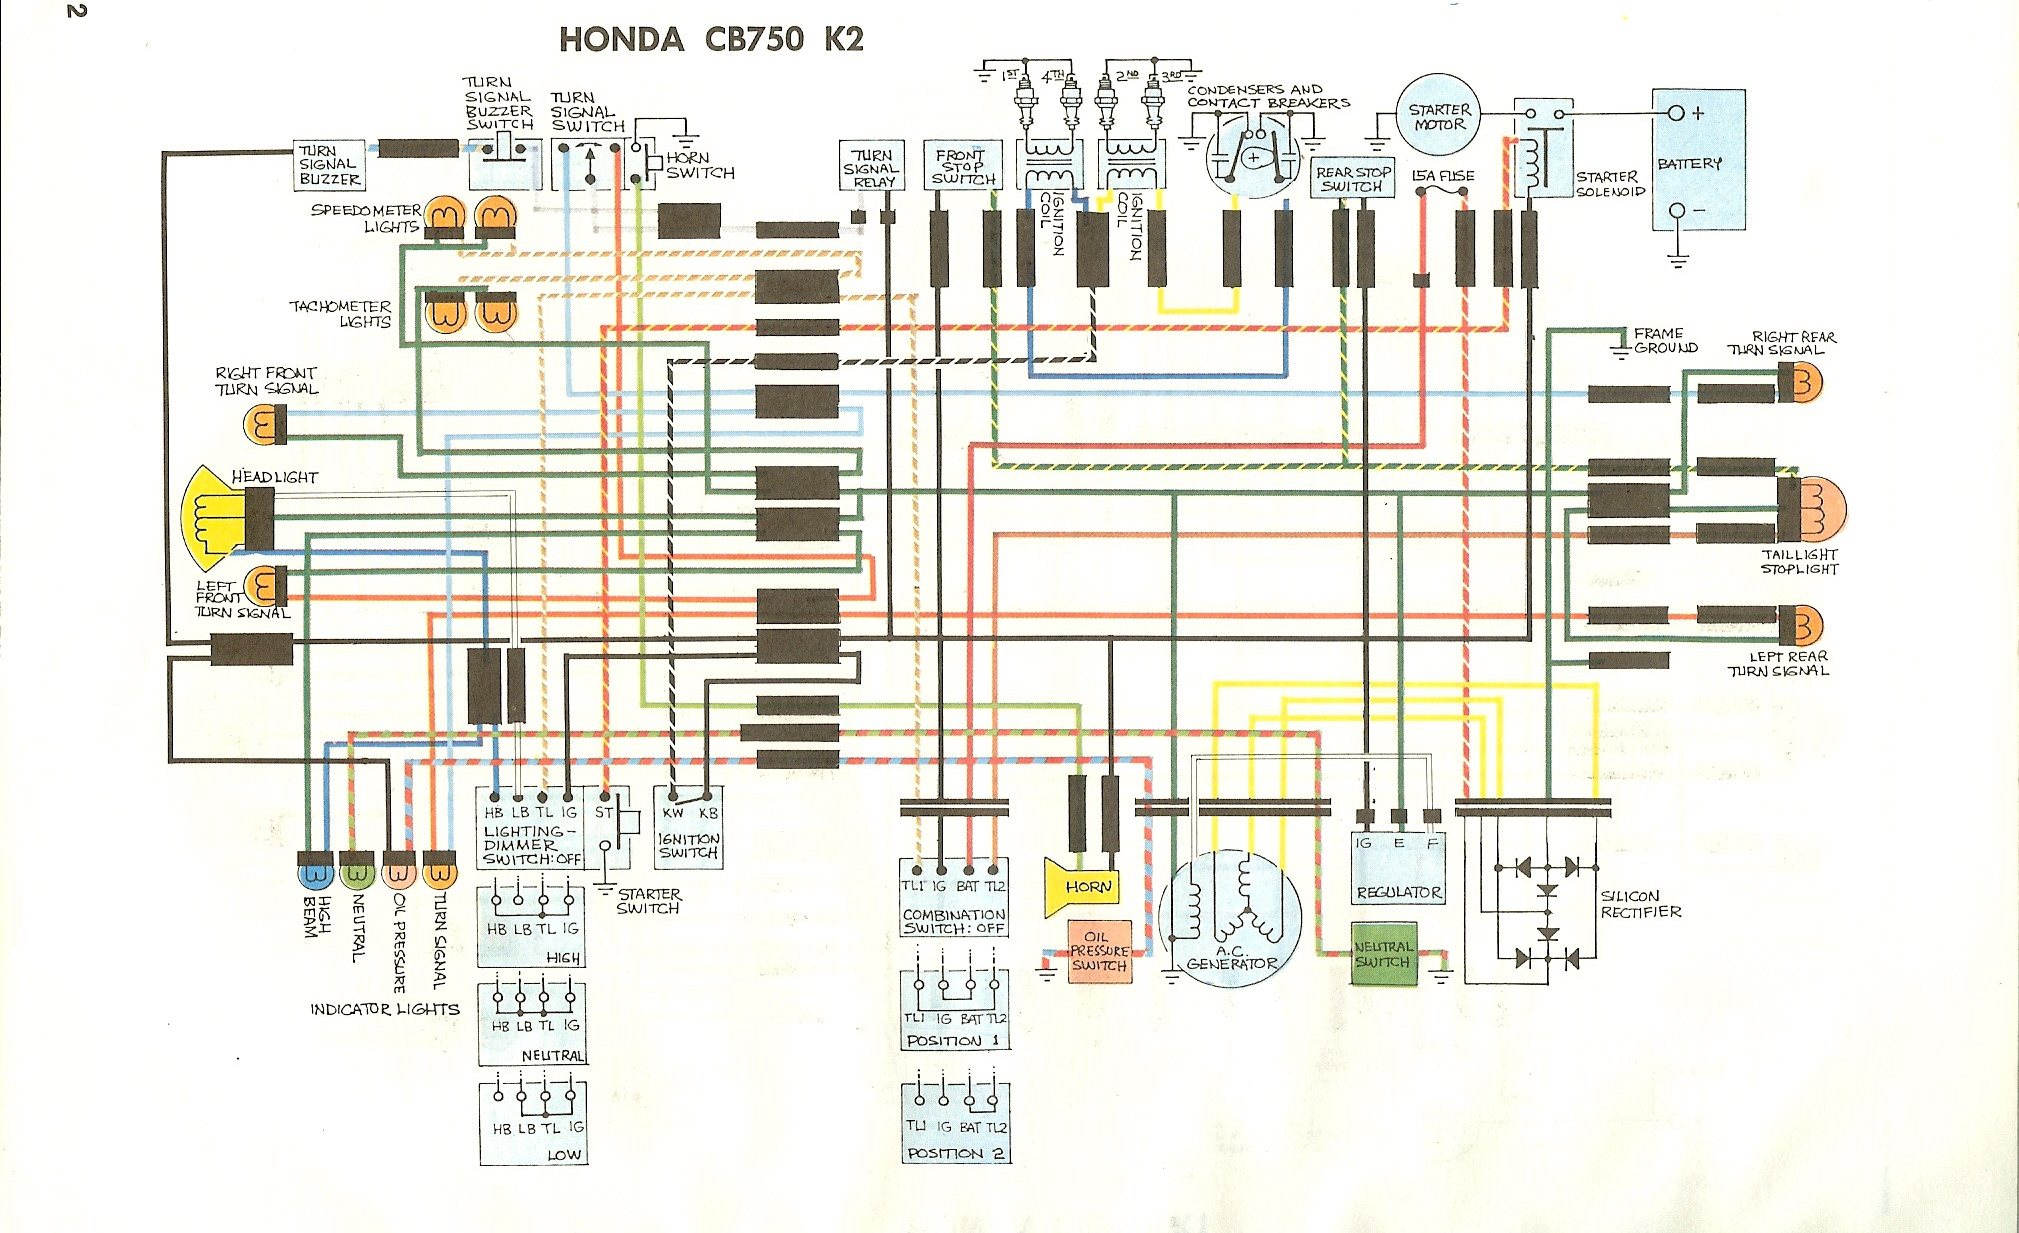 WD750K2 honda c90 wiring diagram honda 200 motorcycle wiring diagram honda motorcycle headlight wiring diagram at n-0.co